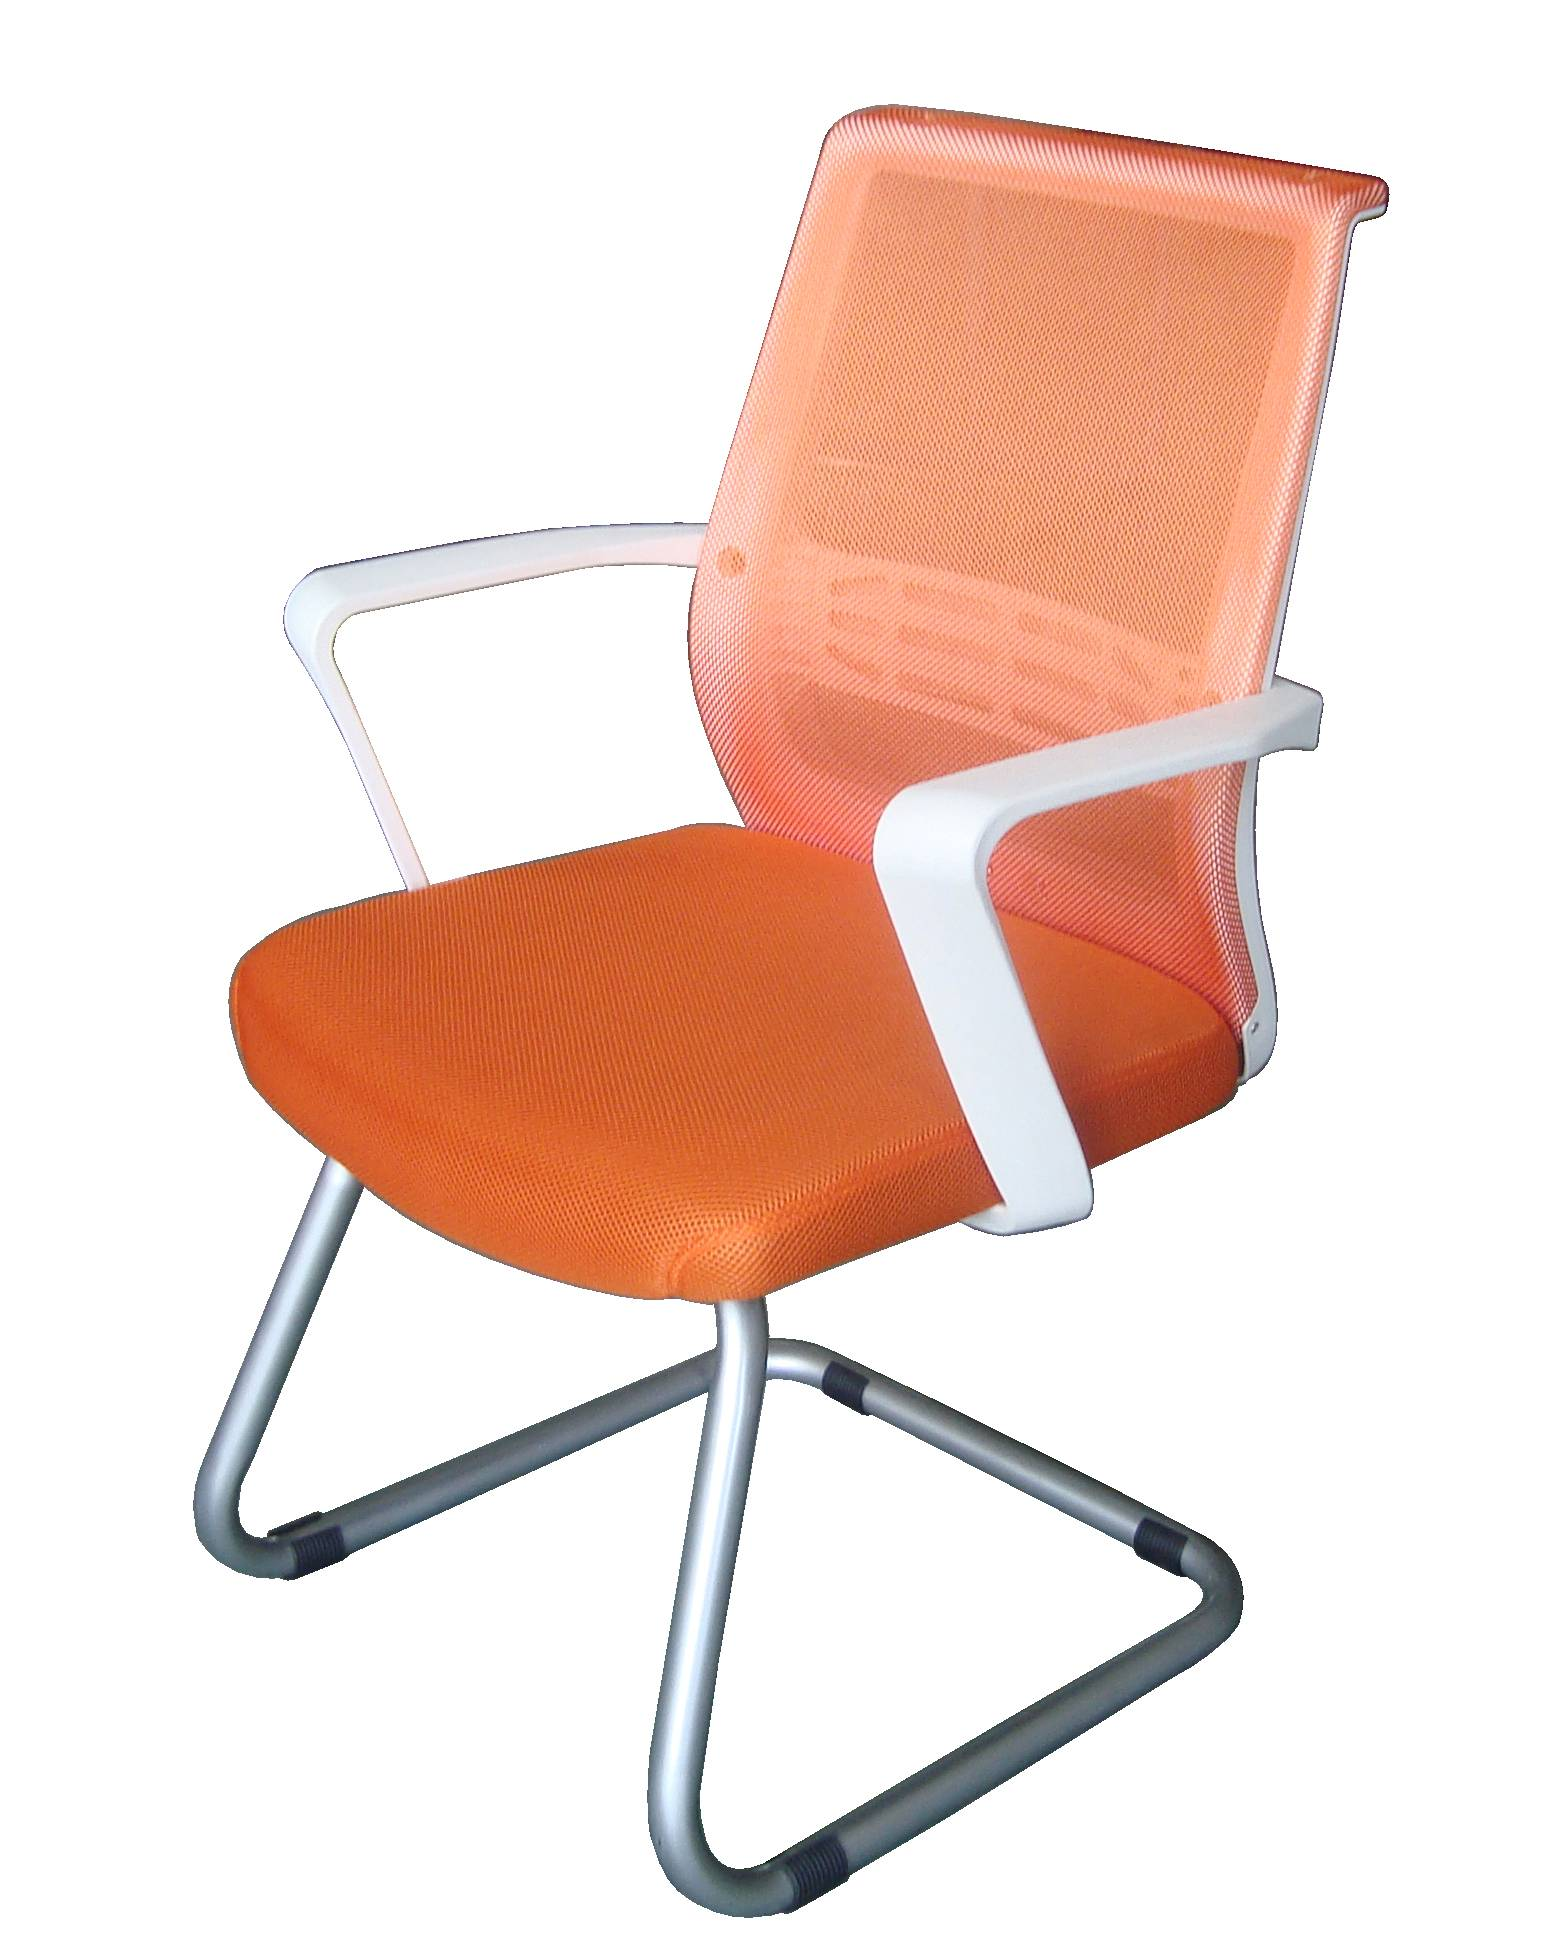 Silla Visita Sx -w4375 Orange Sil620